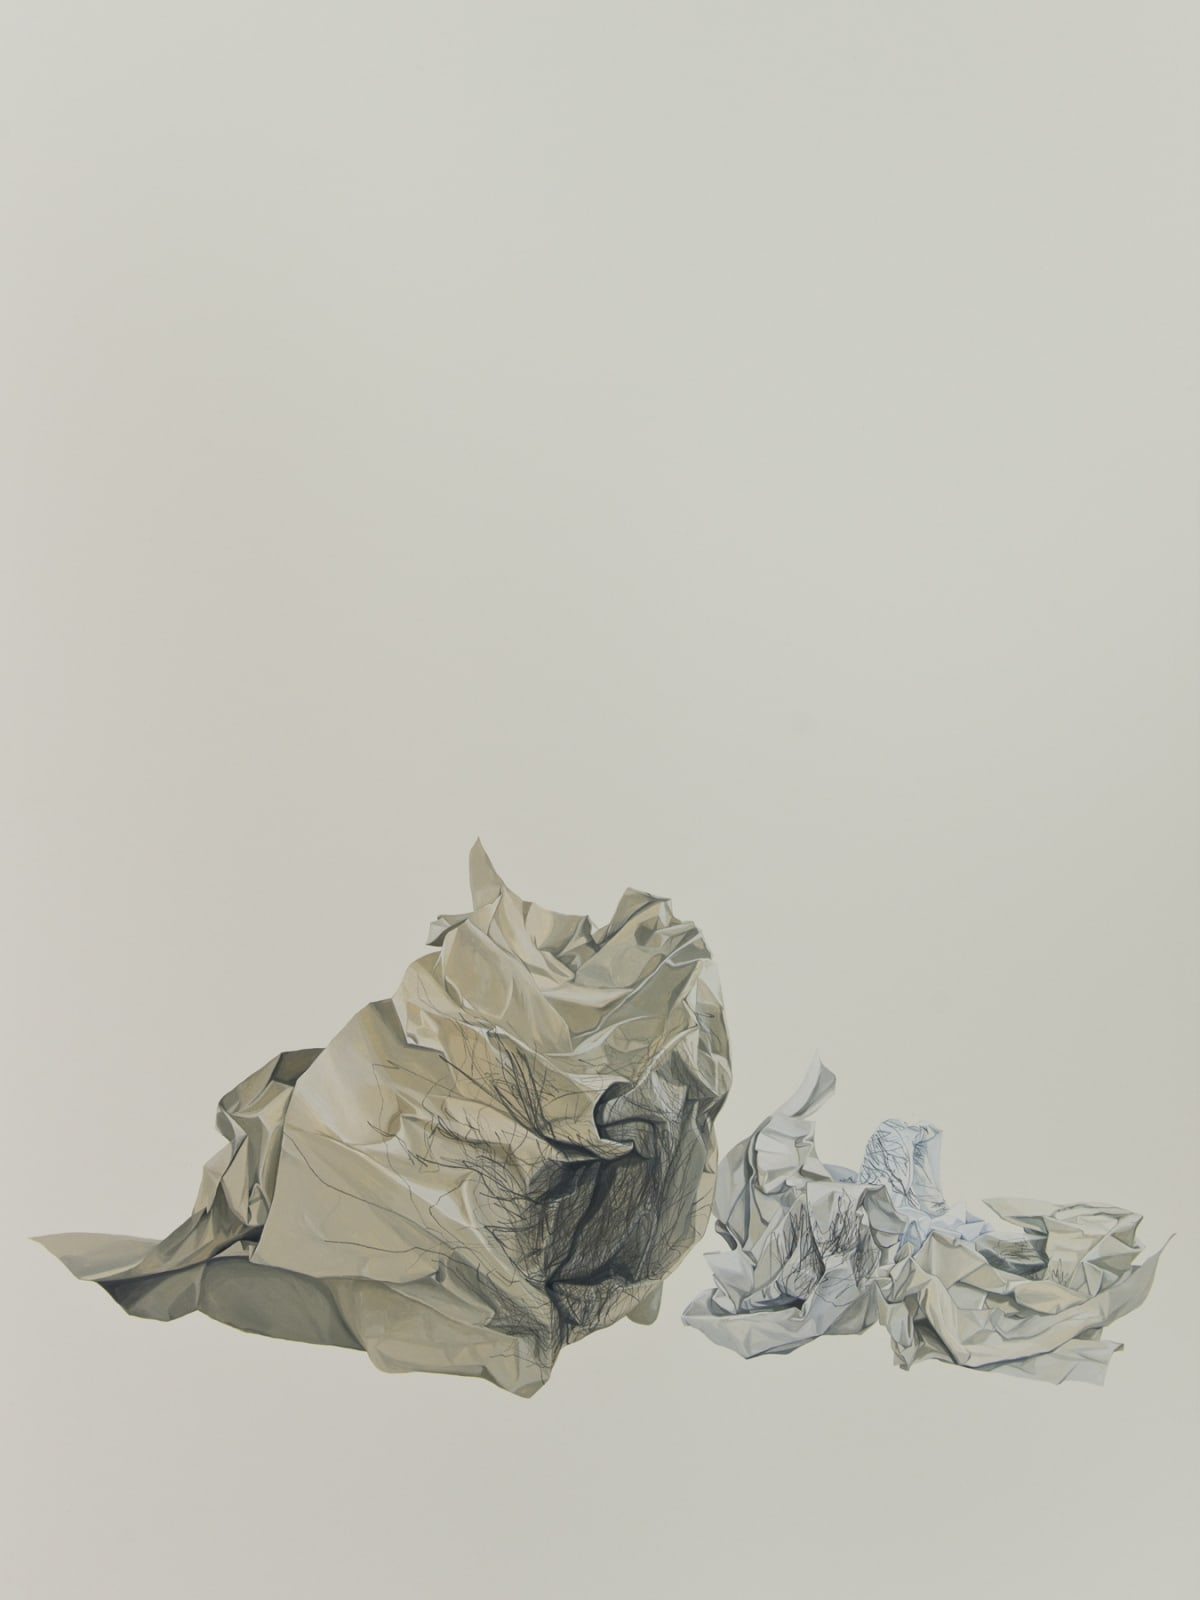 Marita Hewitt, Waste Paper Series; Charting Balance With My Eyes Closed, 2015